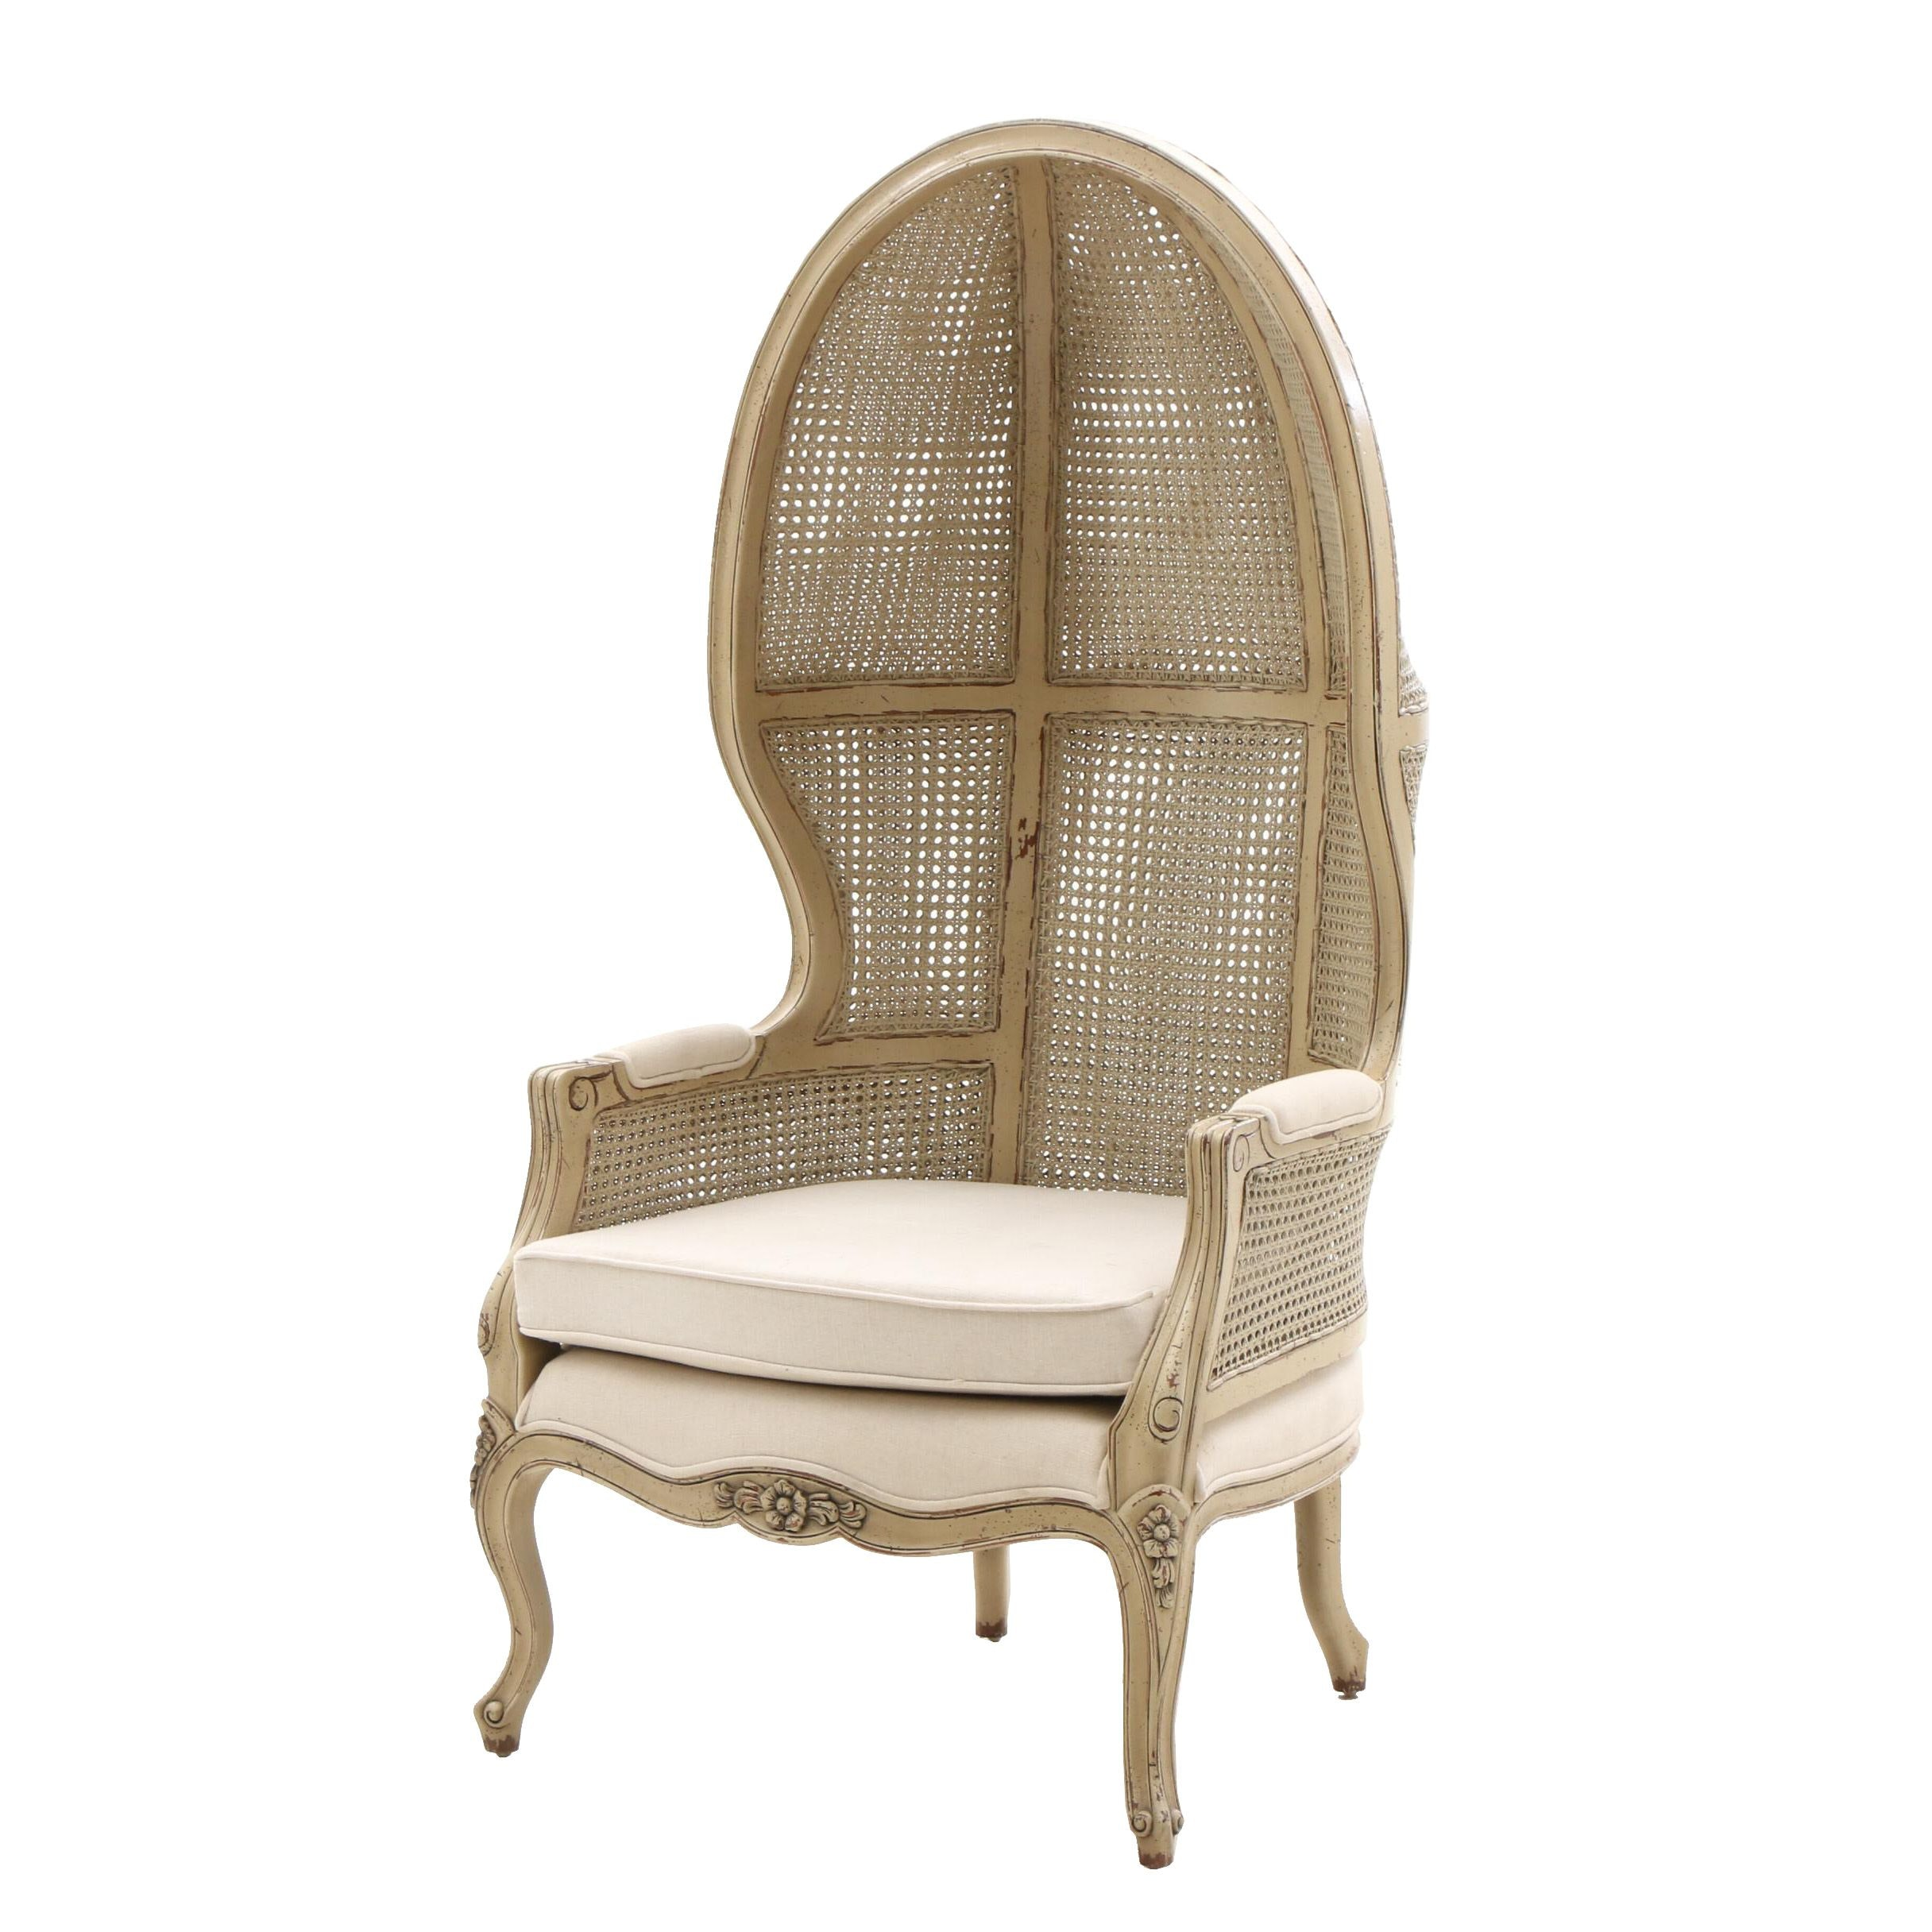 Contemporary Caned-Back Porter's Chair with White Cushion, Louis XV in Style